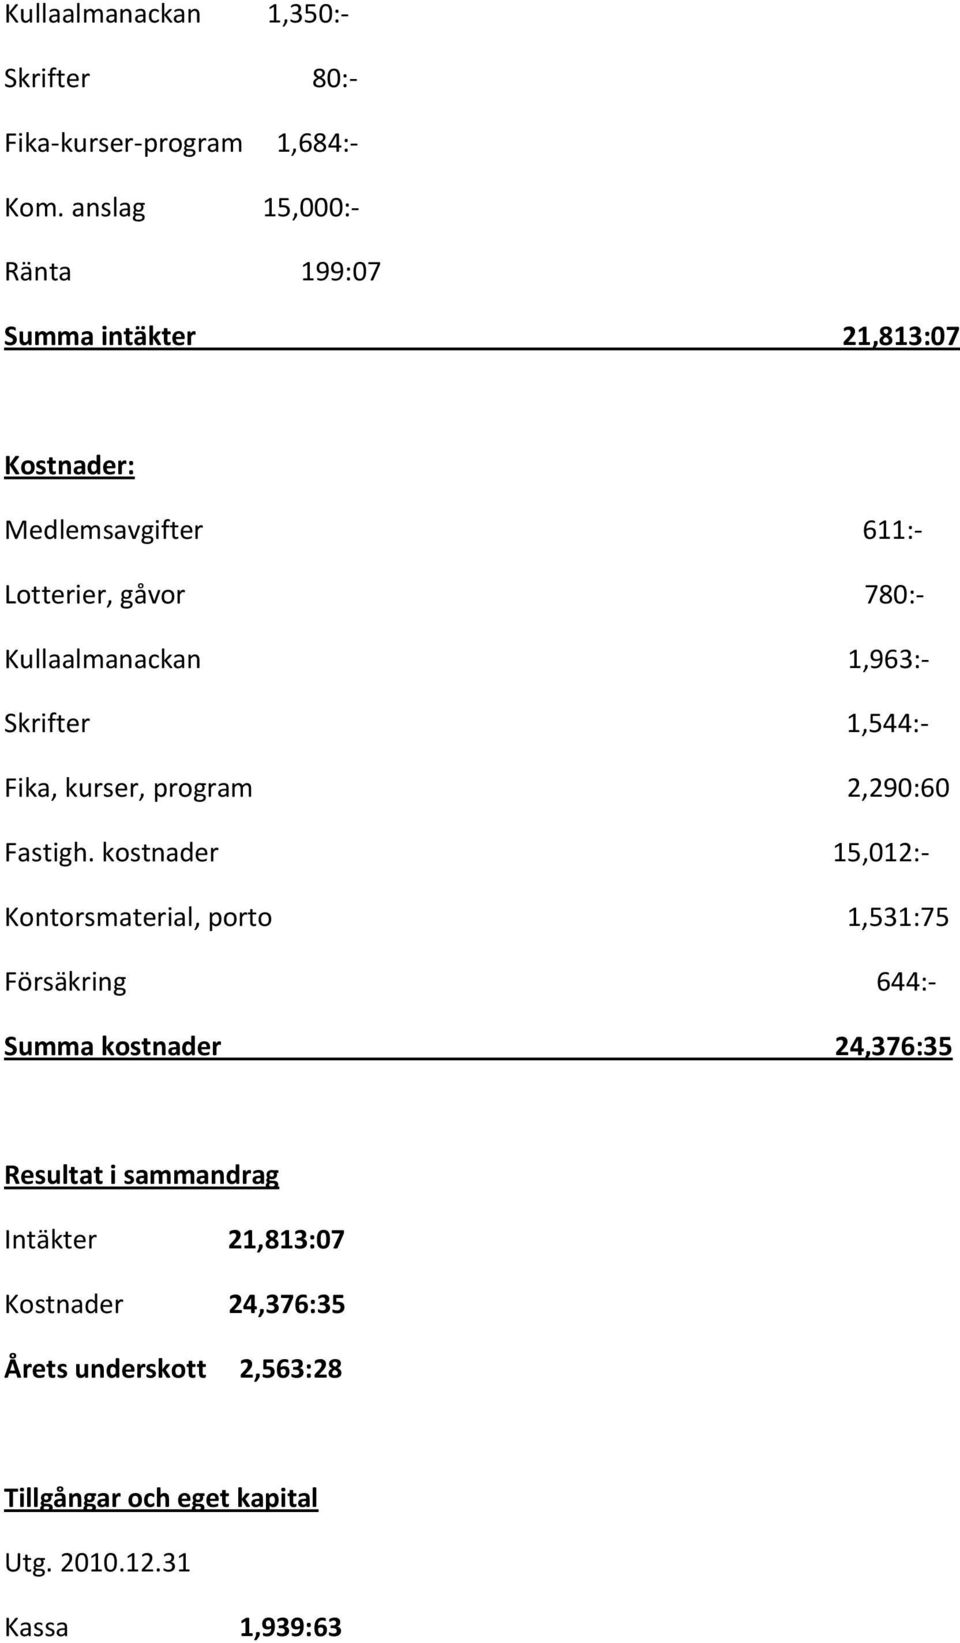 1,963:- Skrifter 1,544:- Fika, kurser, program 2,290:60 Fastigh.